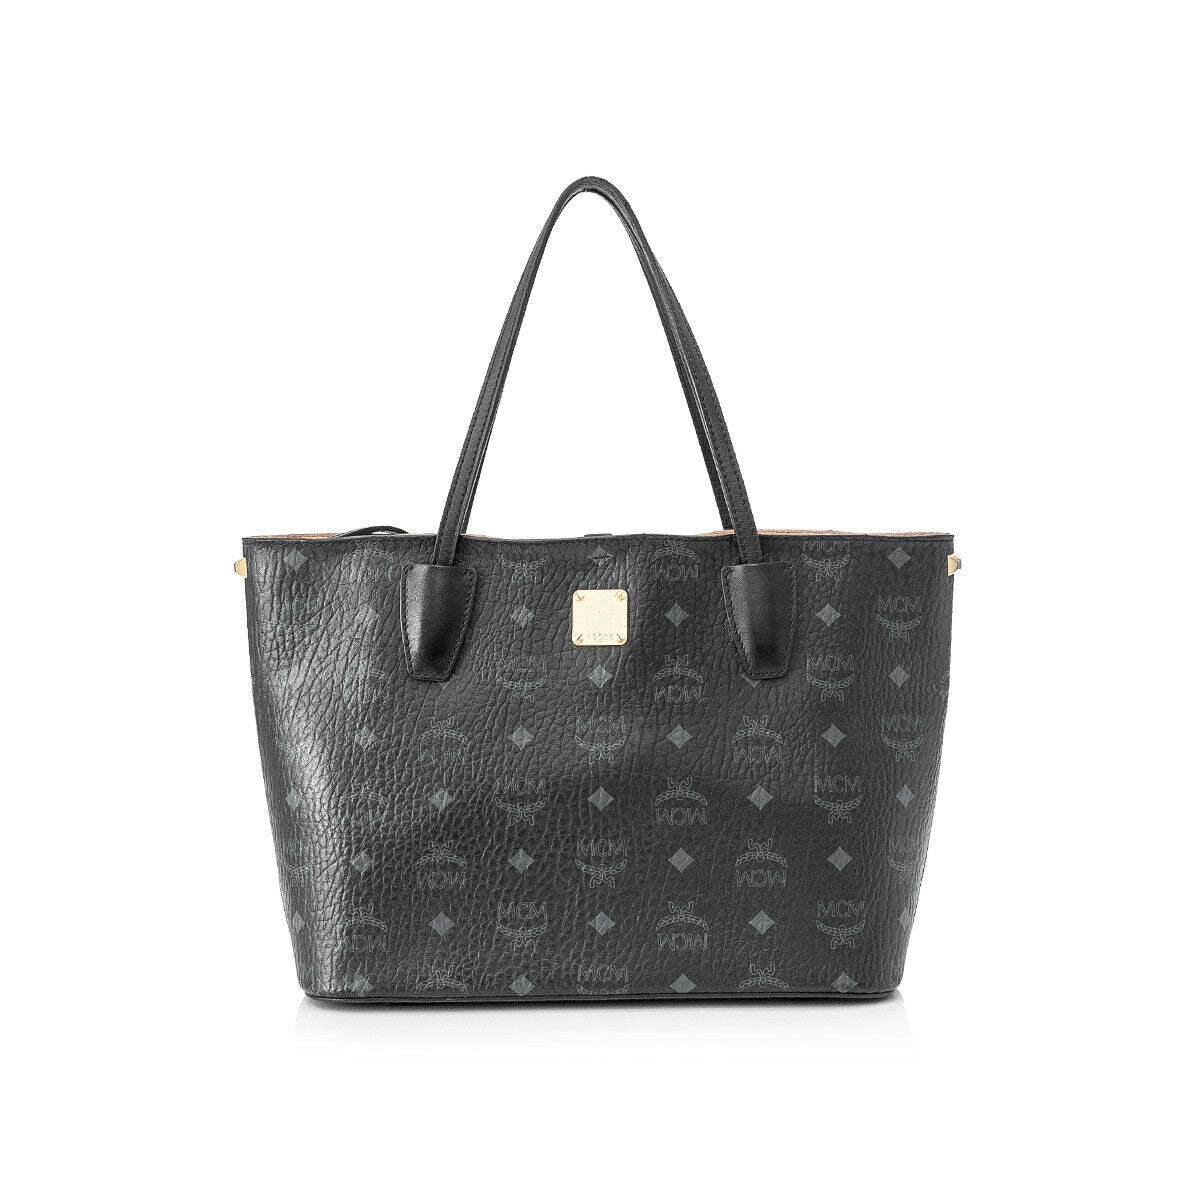 MCM Black Diamond Visetos Small Shopper Tote